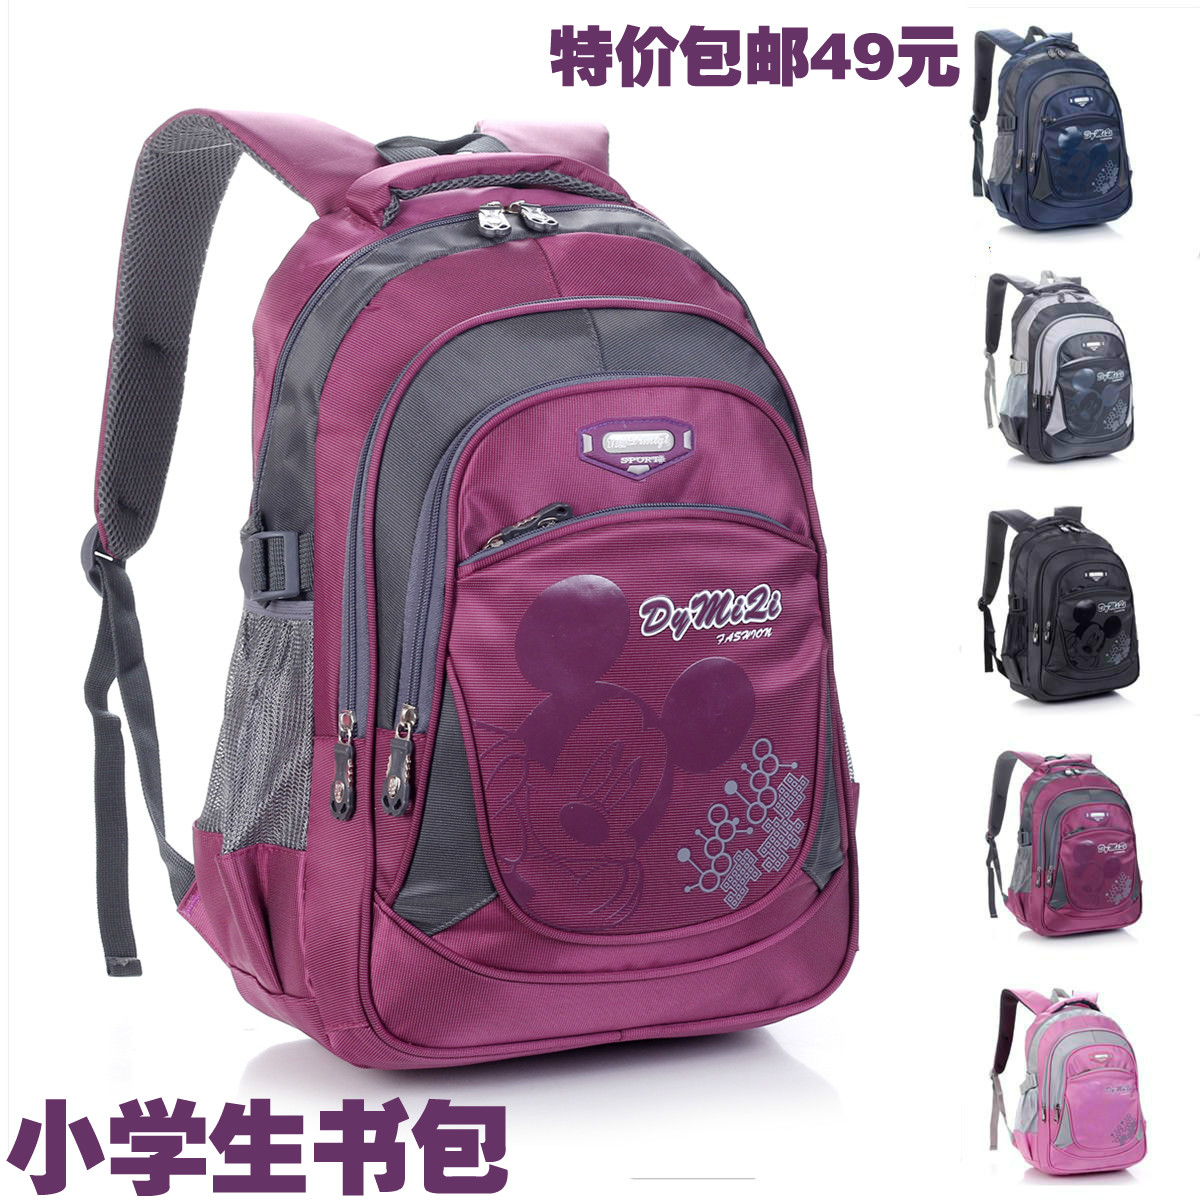 Backpacks For School On Sale aNr2QxwO